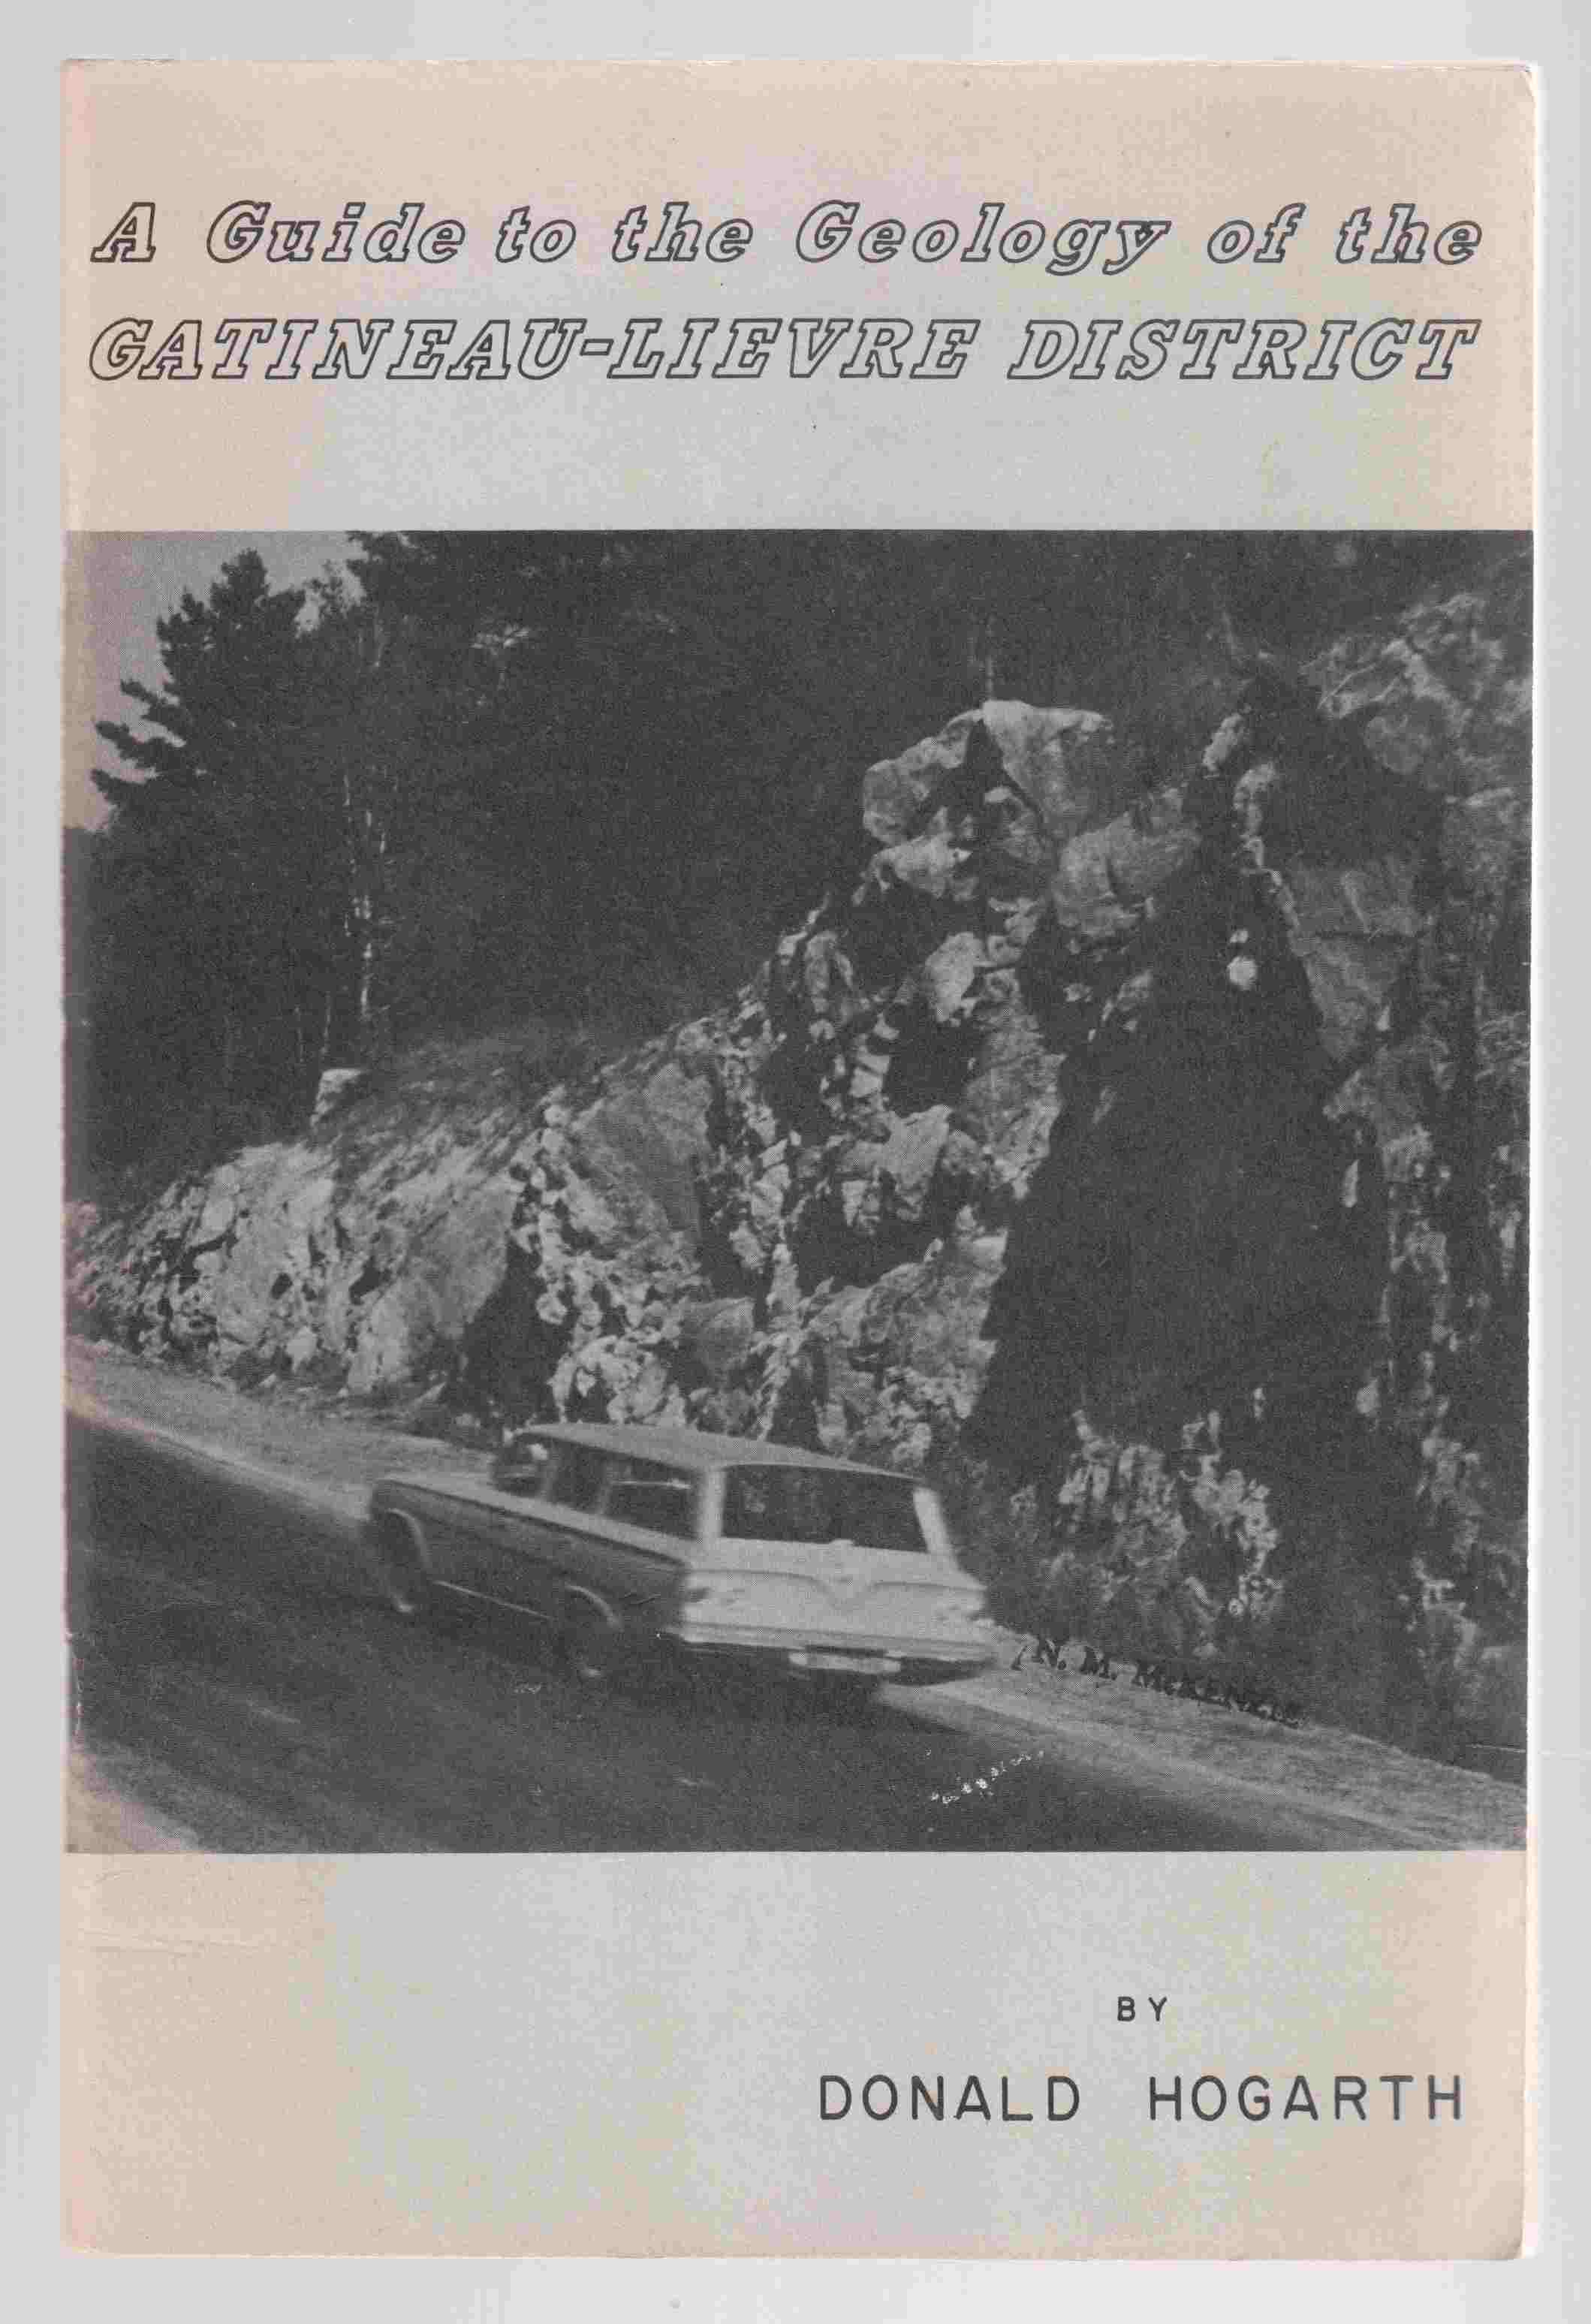 Image for A Guide to the Geology of the Gatineau-Lievre District